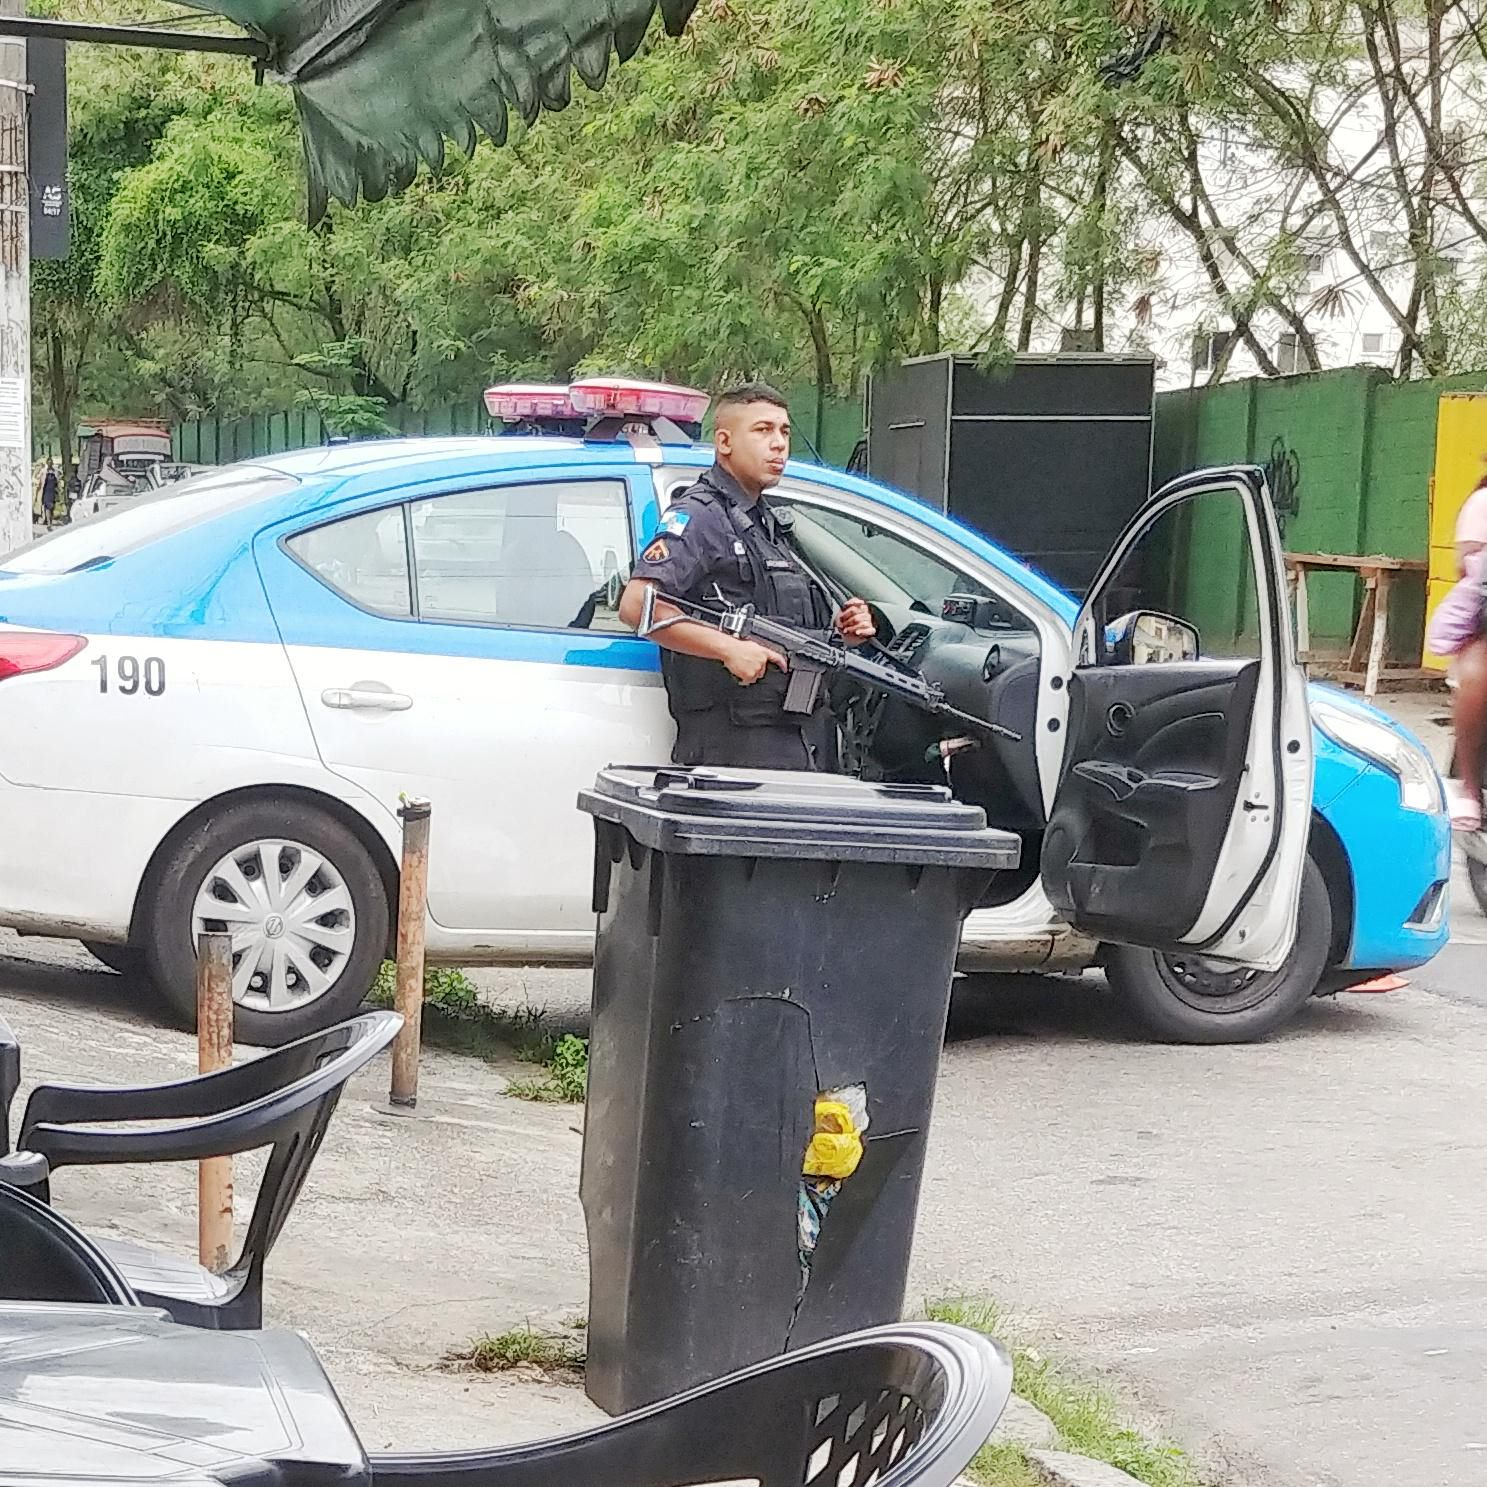 Military Police of Rio de Janeiro carrying Para FAL 7.62x51mm rifles on duty near one of the entrances of one of Rio